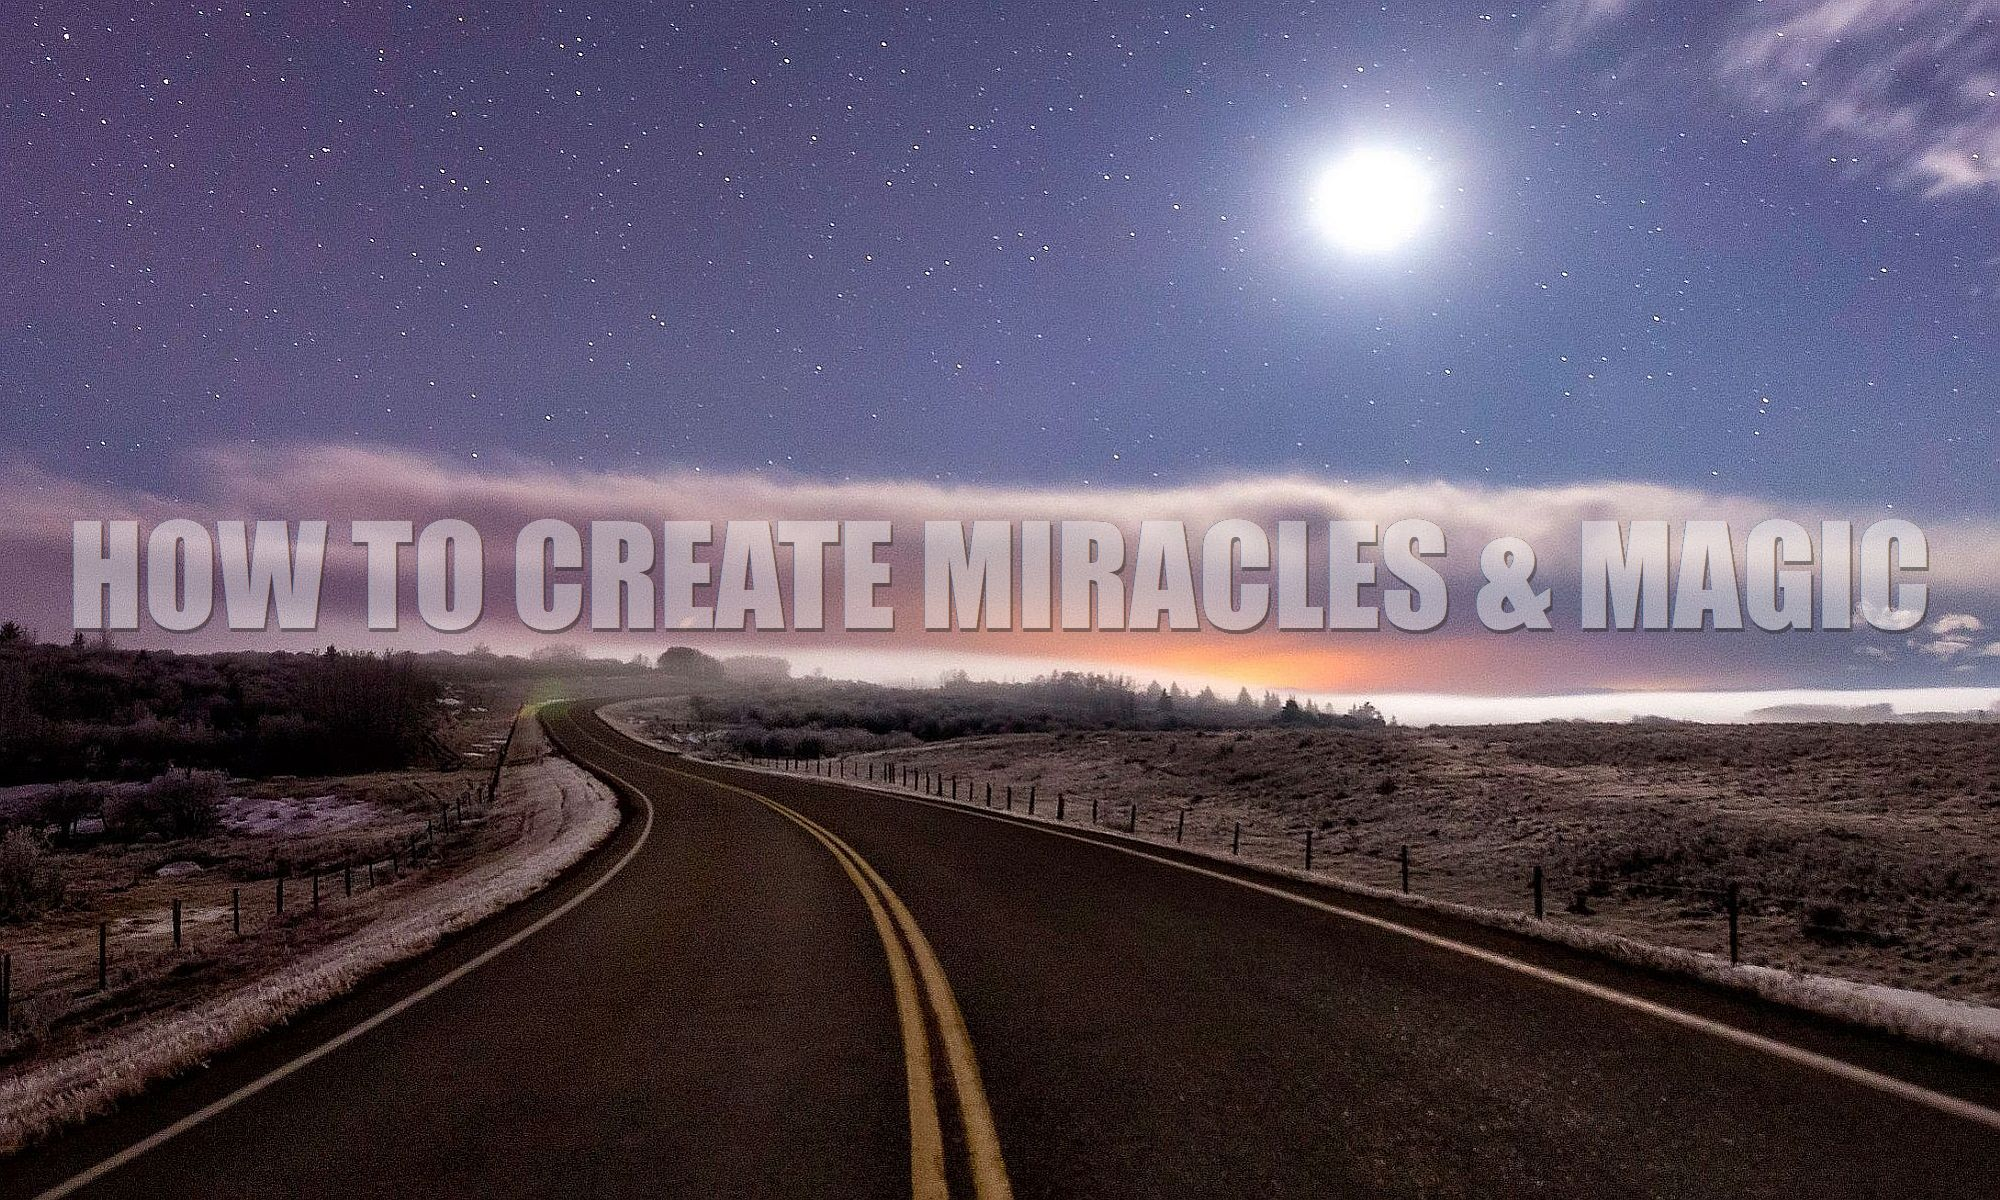 HOW-CAN-I-CREATE-MIRACLES-AND-MAGIC-WITH-MY-MIND-2000